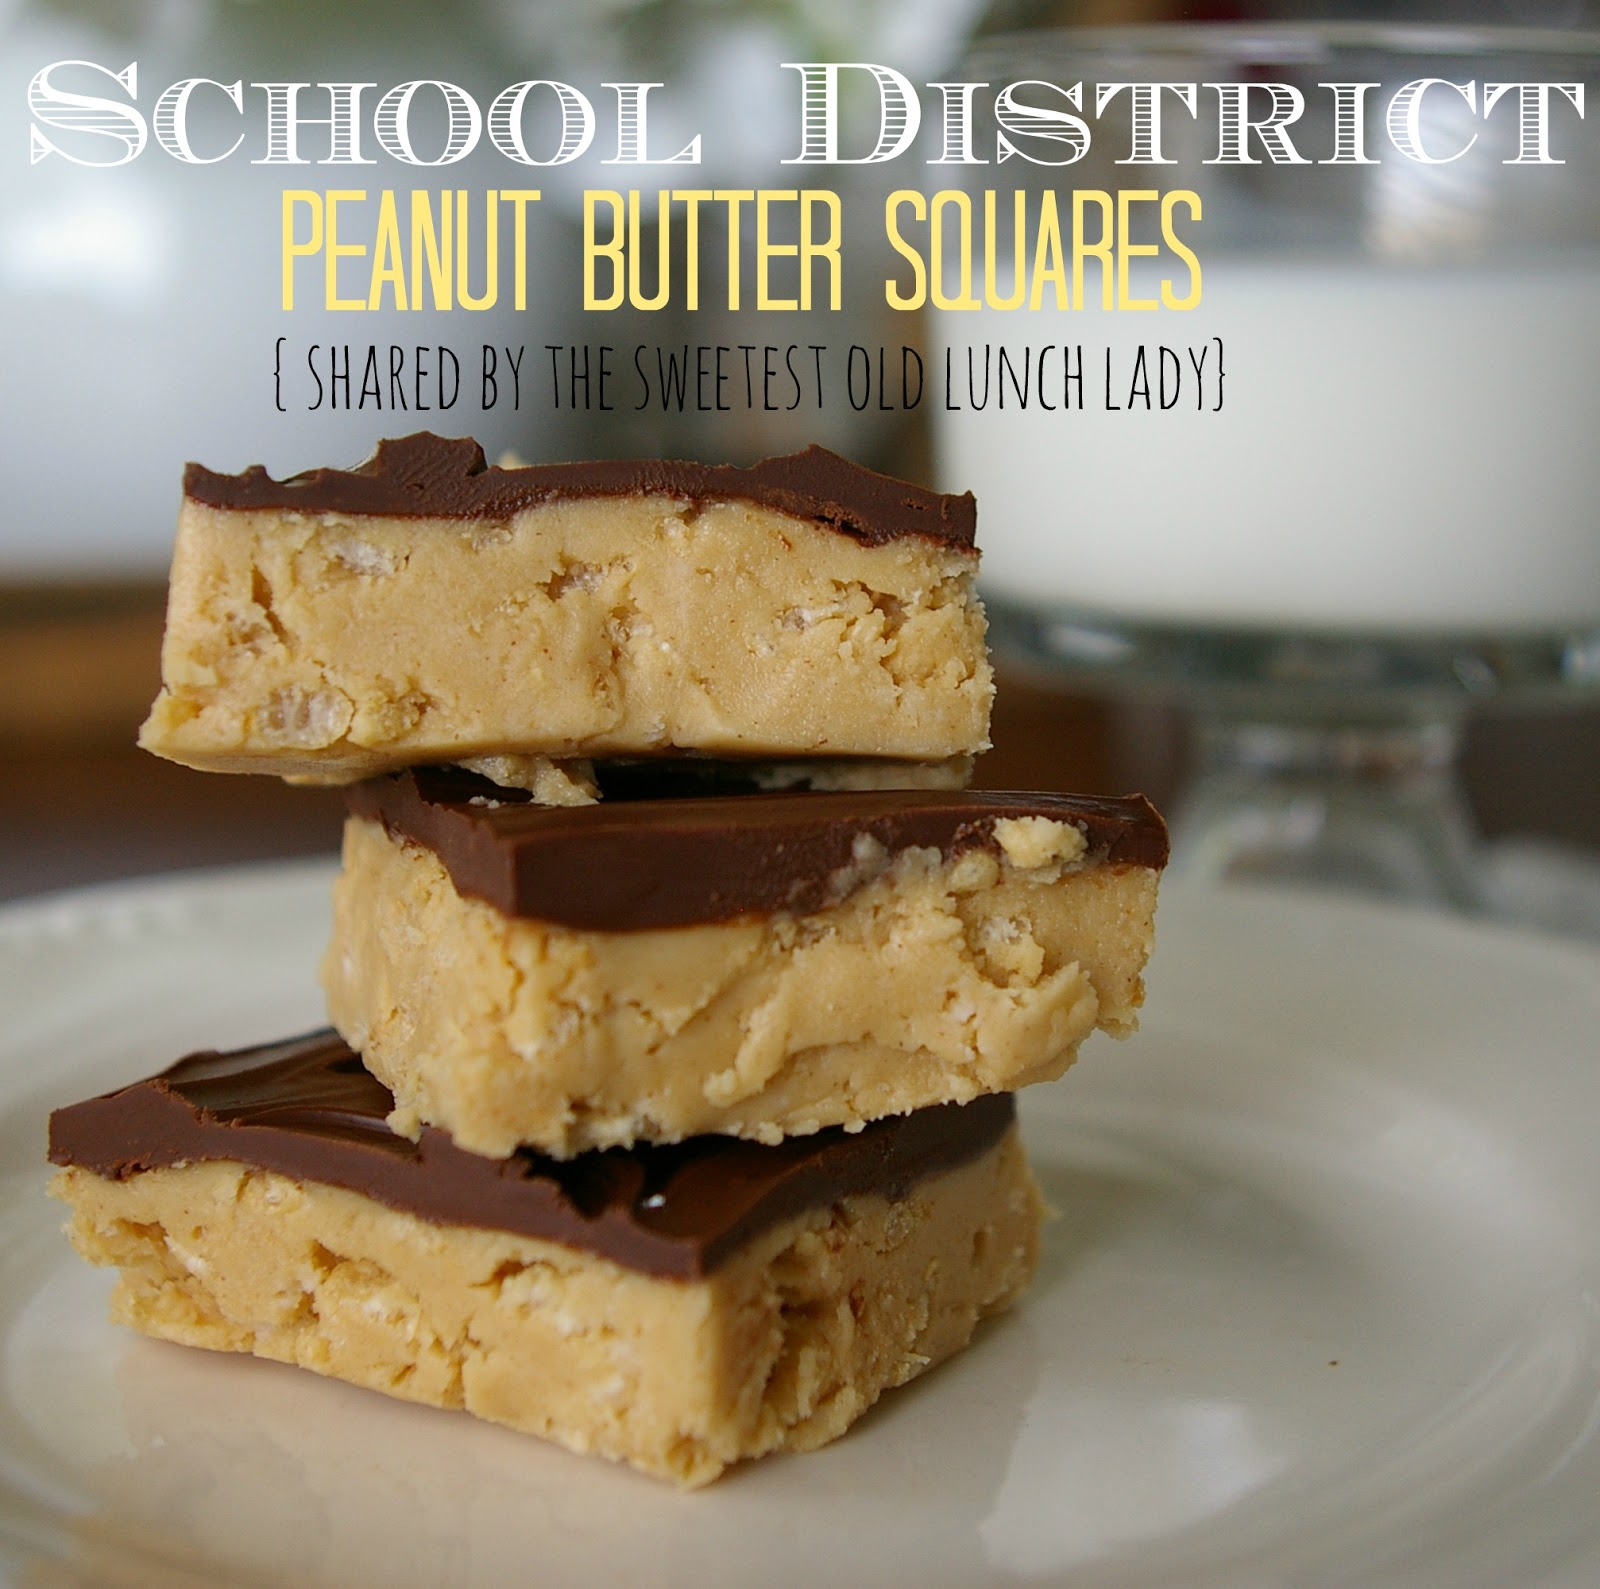 School district peanut butter squares